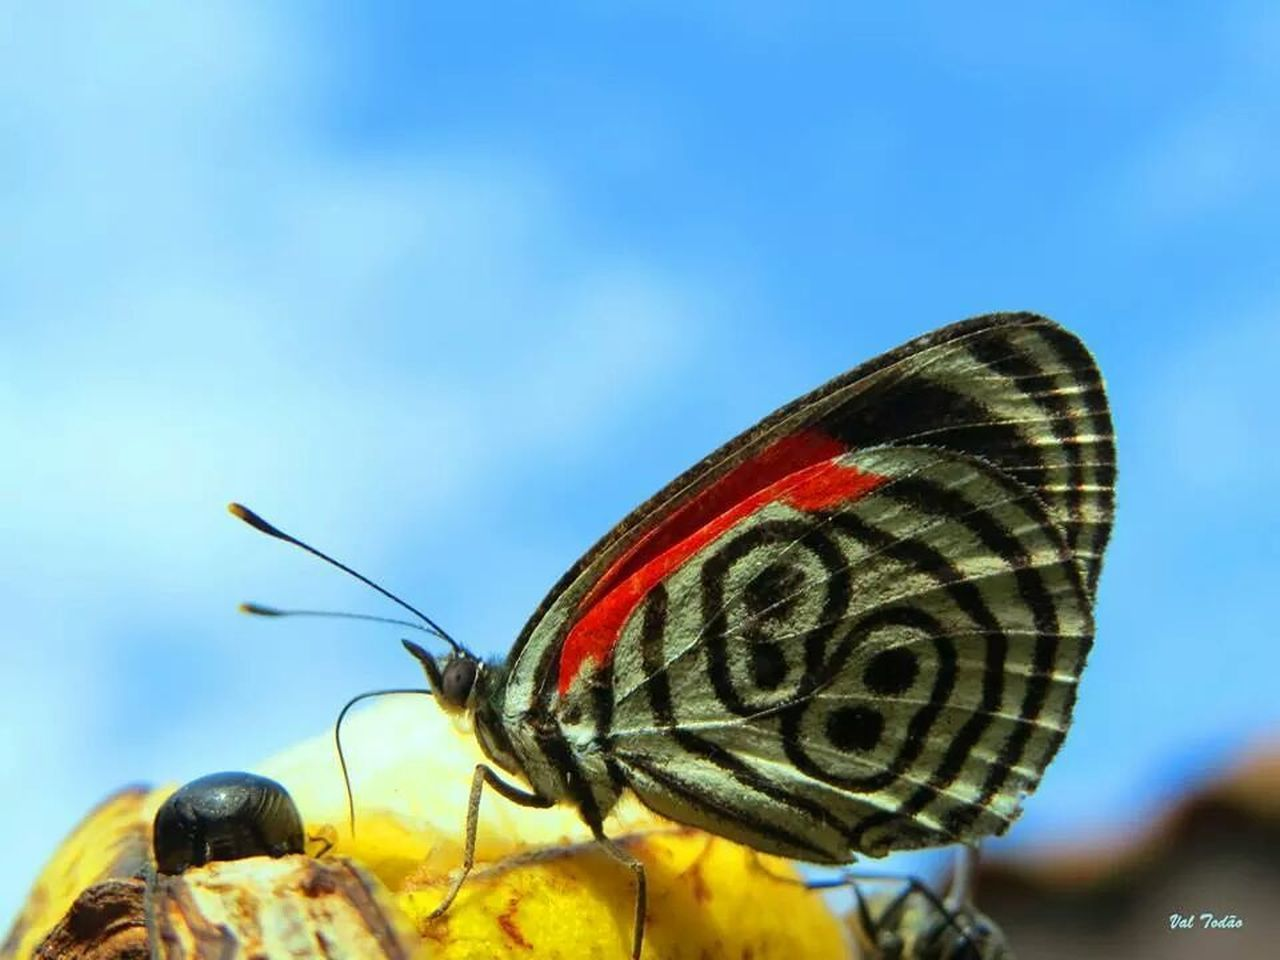 insect, animal themes, one animal, animals in the wild, close-up, no people, focus on foreground, animal wildlife, butterfly - insect, outdoors, day, animal markings, nature